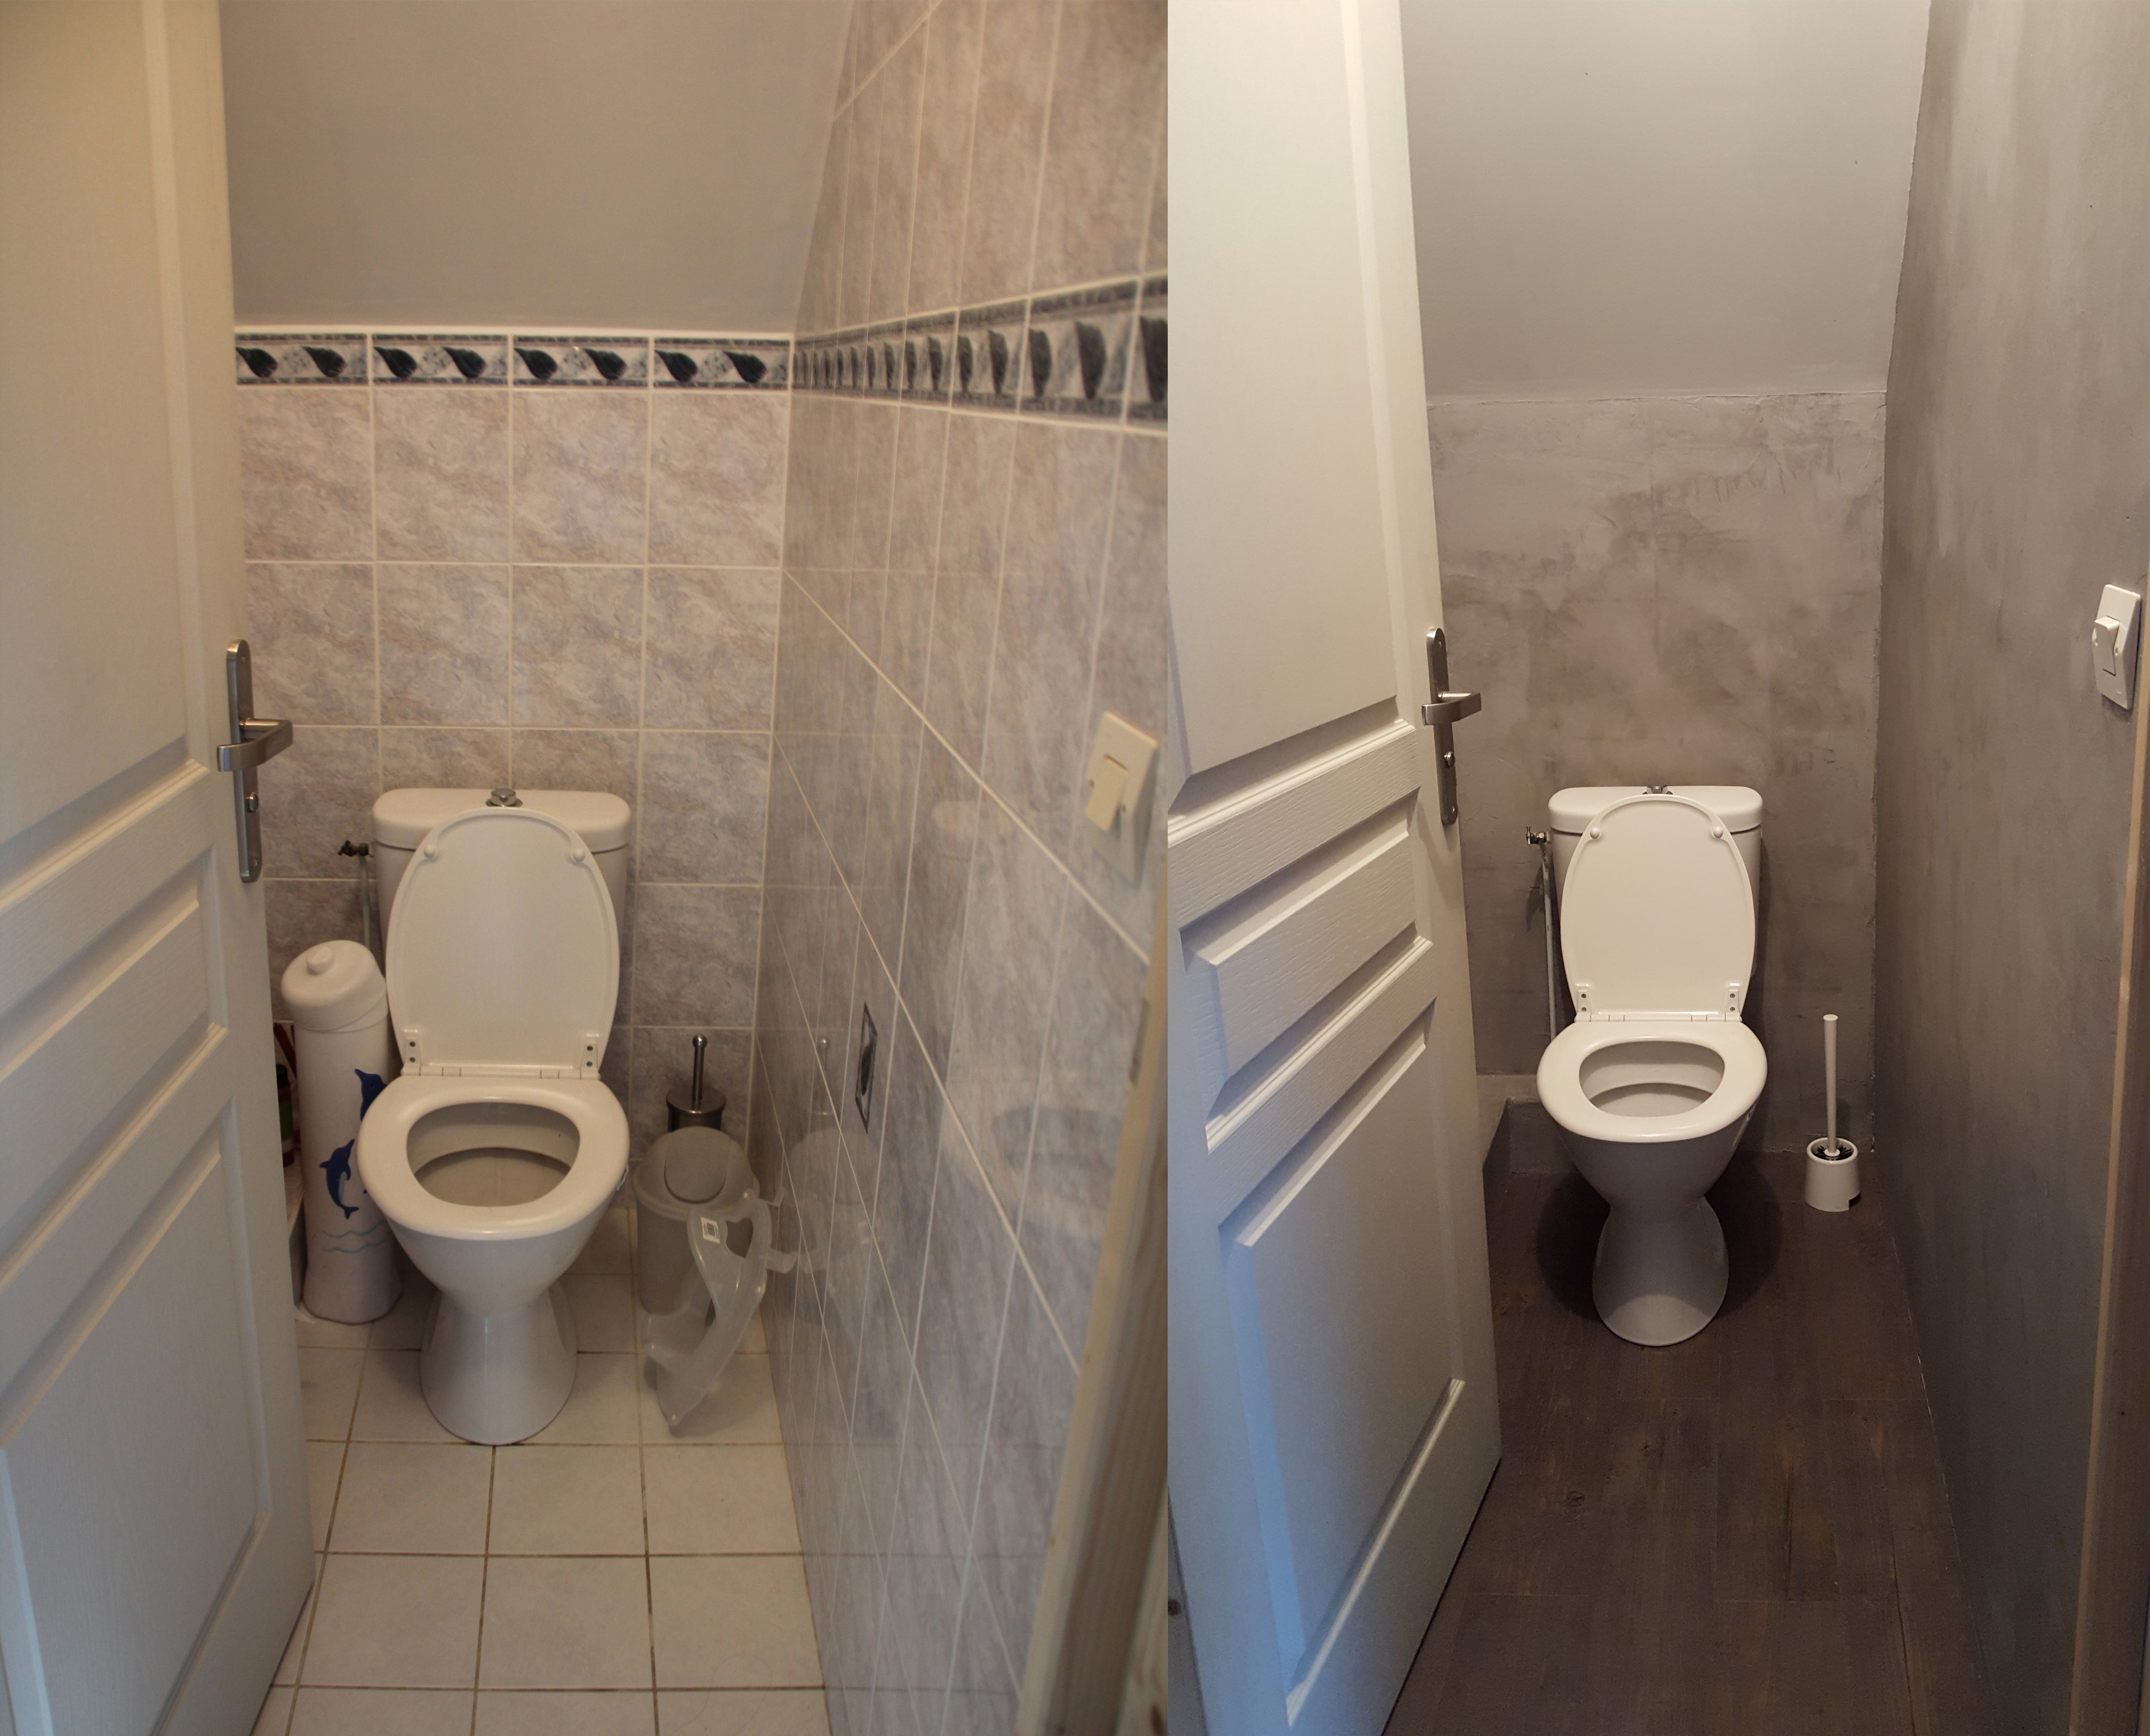 Avant Apres Wc Toilettes Design Moderne Beton Renovation Resine Faux Parquet Dalles Leroy Merlin Resinence Beton Avant Apres Wc Toilette Design